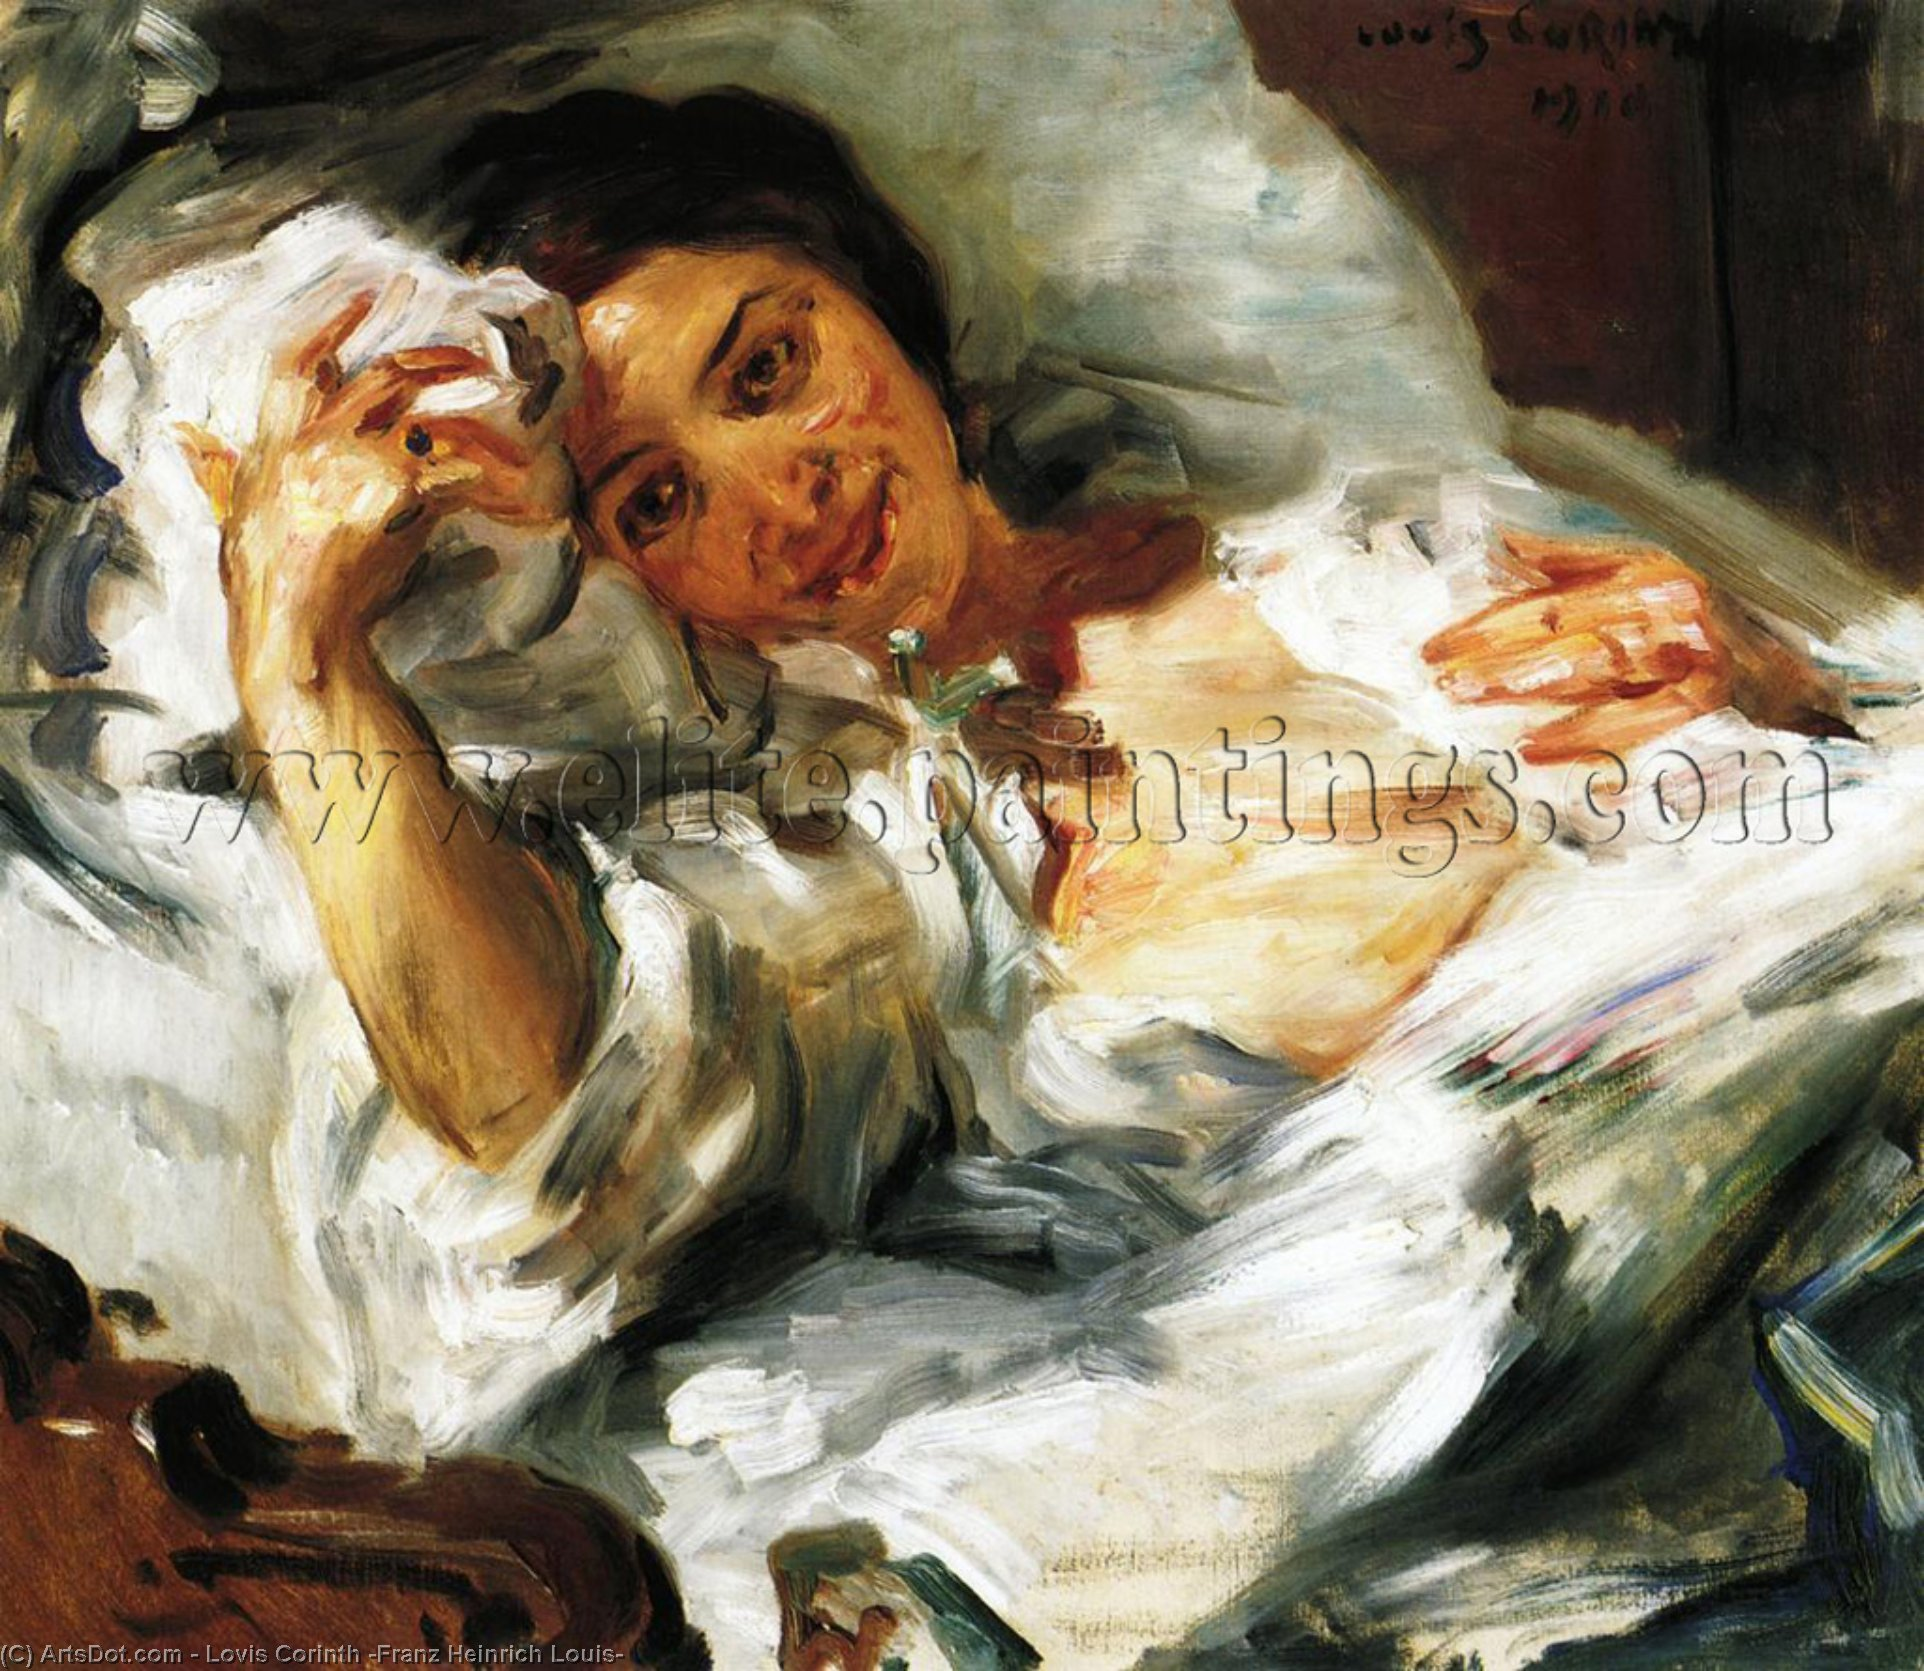 Wikioo.org - The Encyclopedia of Fine Arts - Painting, Artwork by Lovis Corinth (Franz Heinrich Louis) - Morning Sun